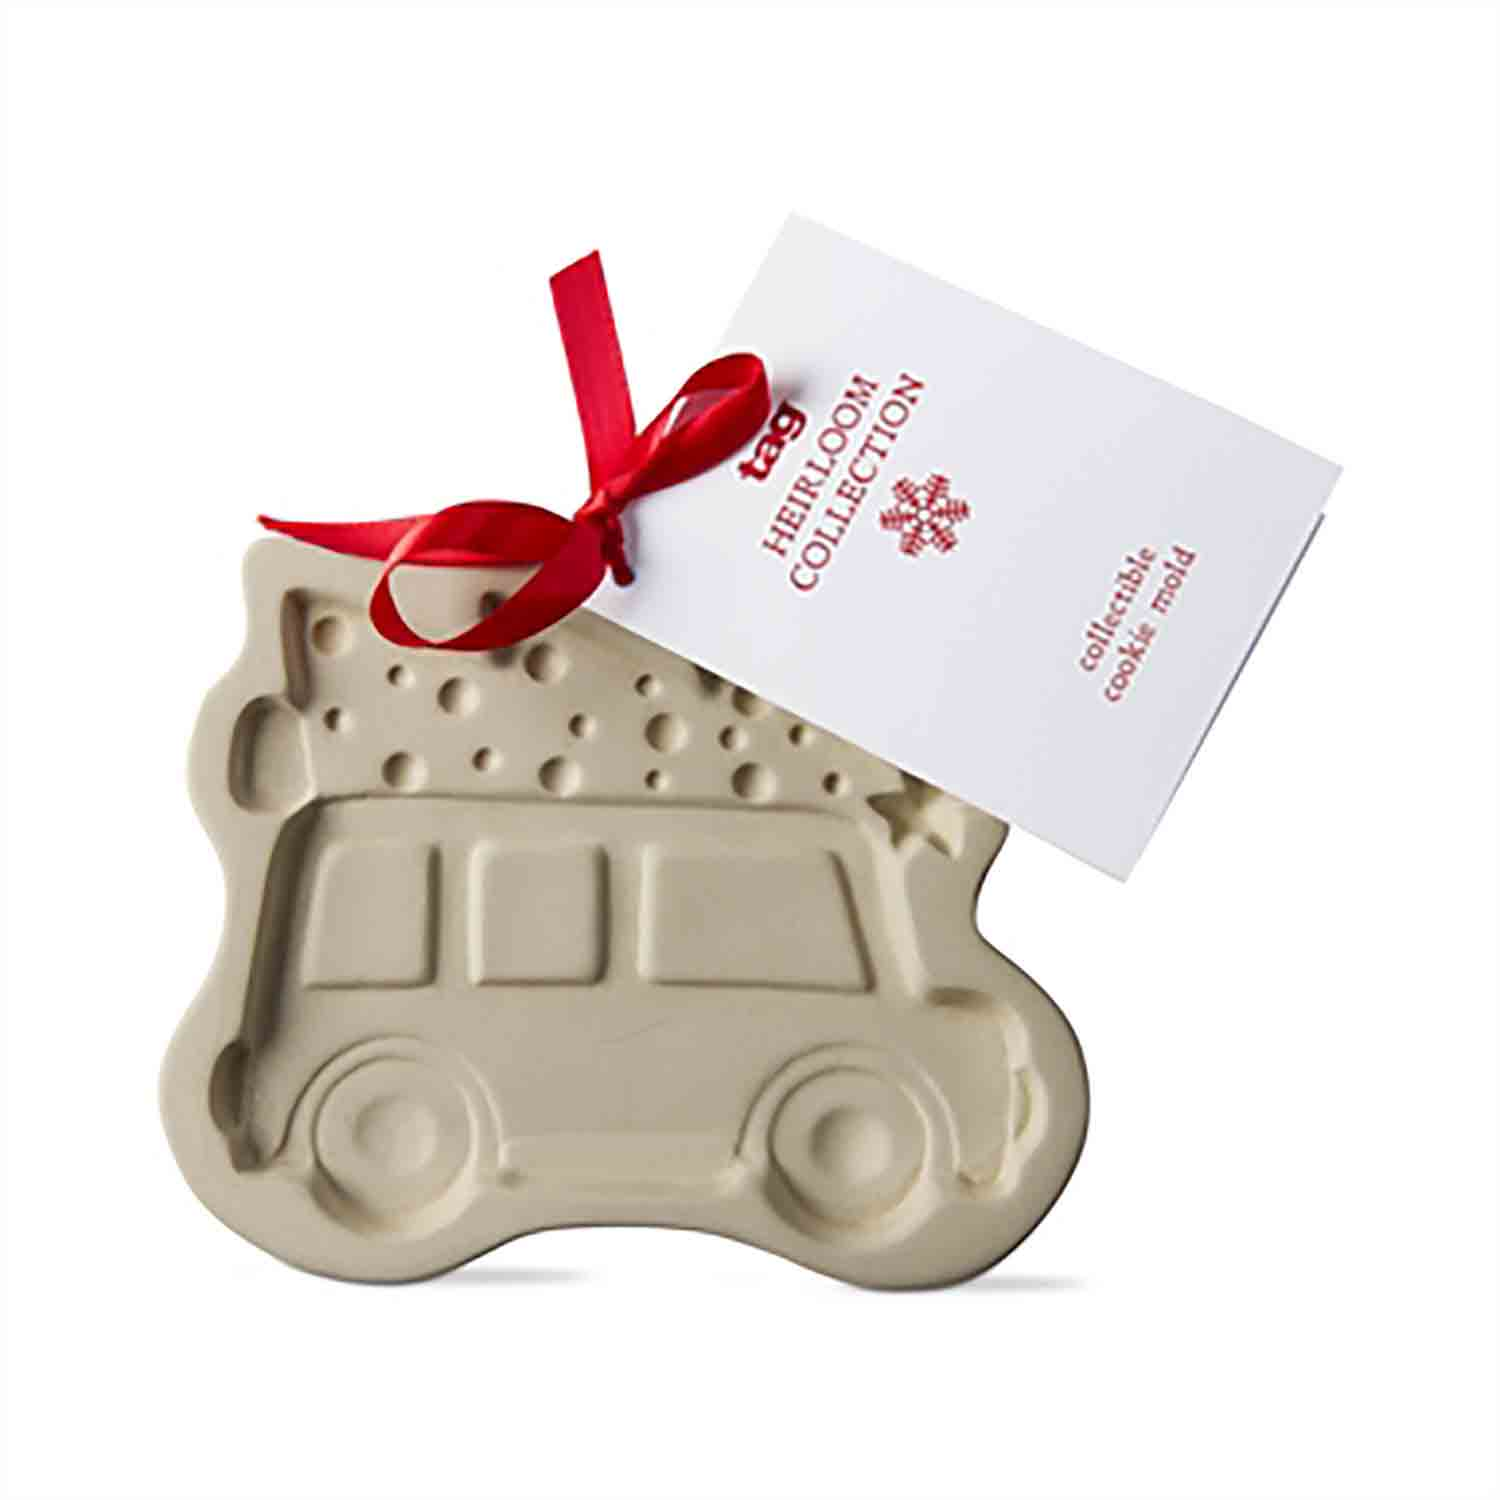 Whimsy Car Cookie Mold